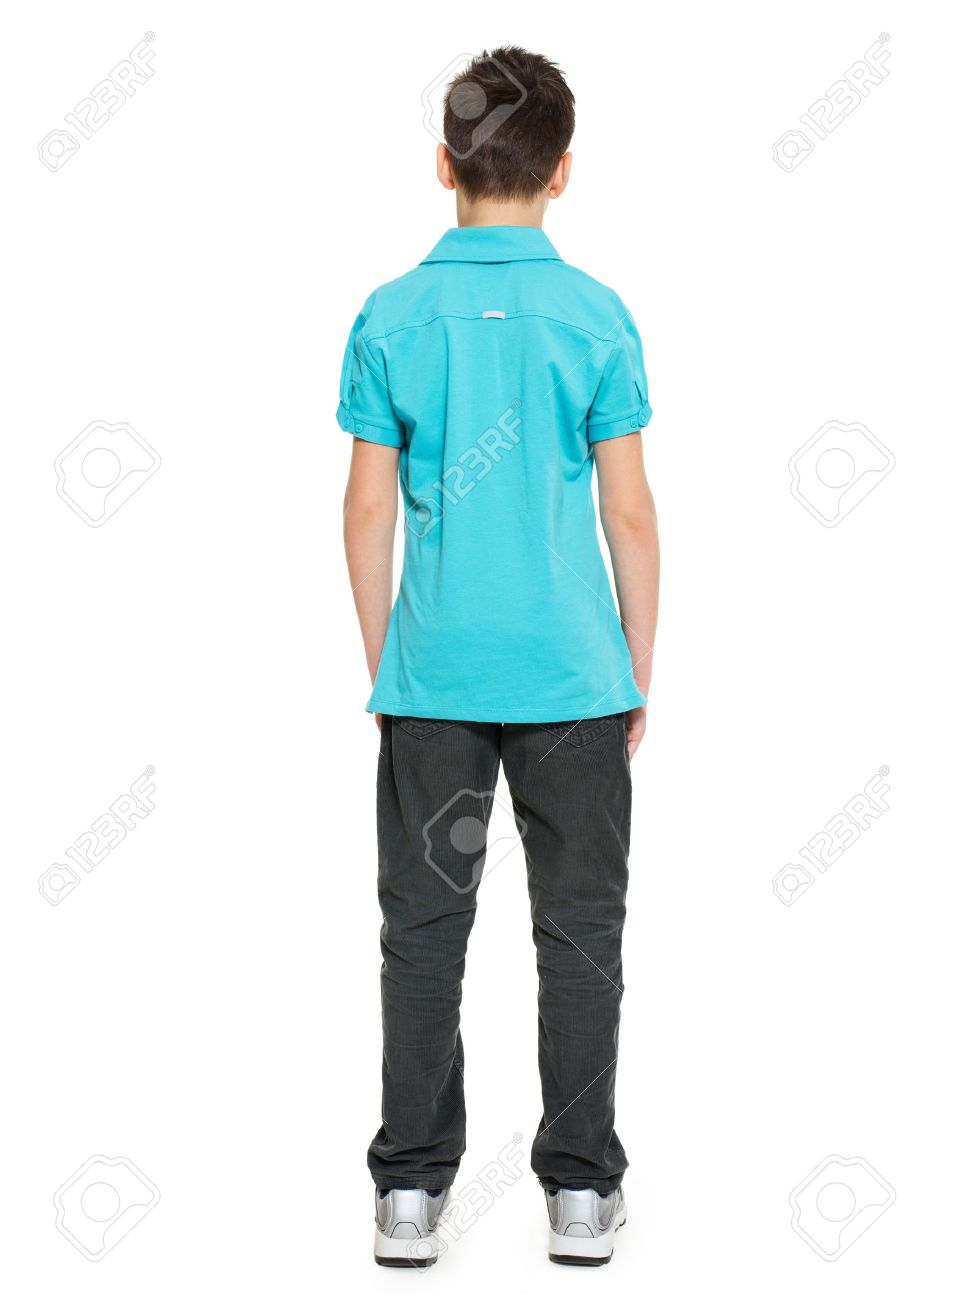 Full portrait of teen boy standing back in casuals - isolated on white background - 53555194